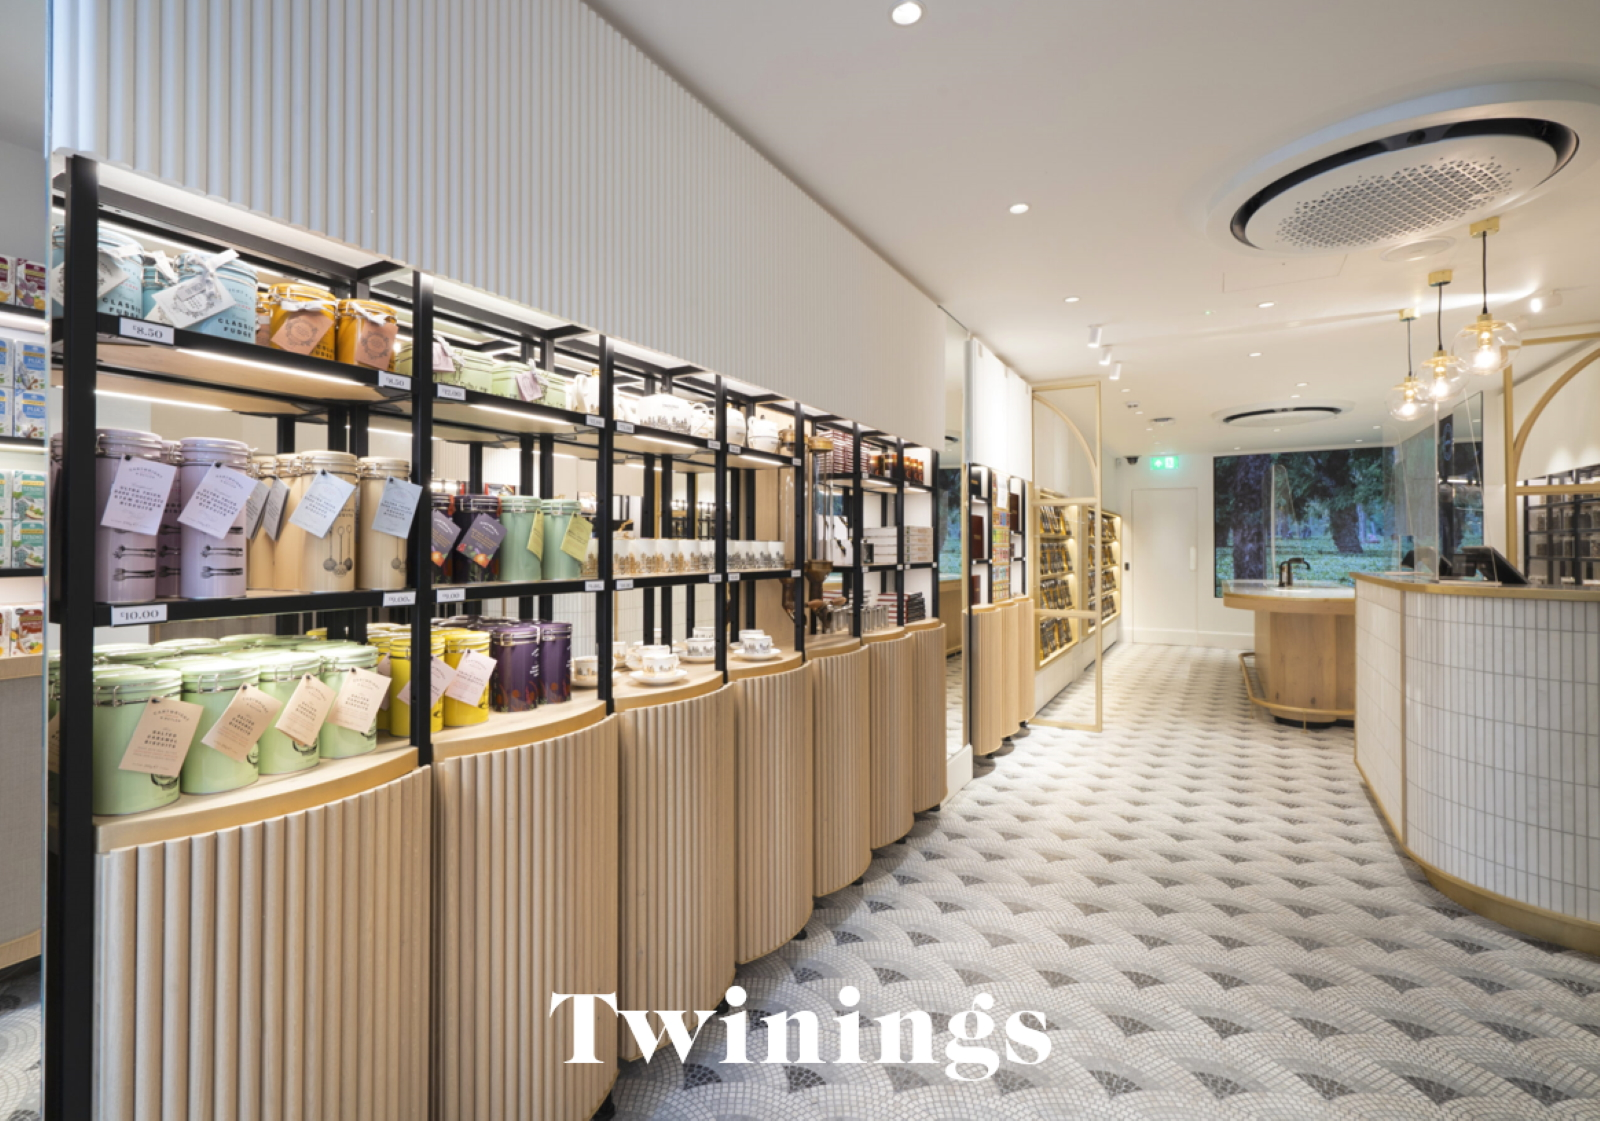 Twinings retail innovation tour missions mmm 0